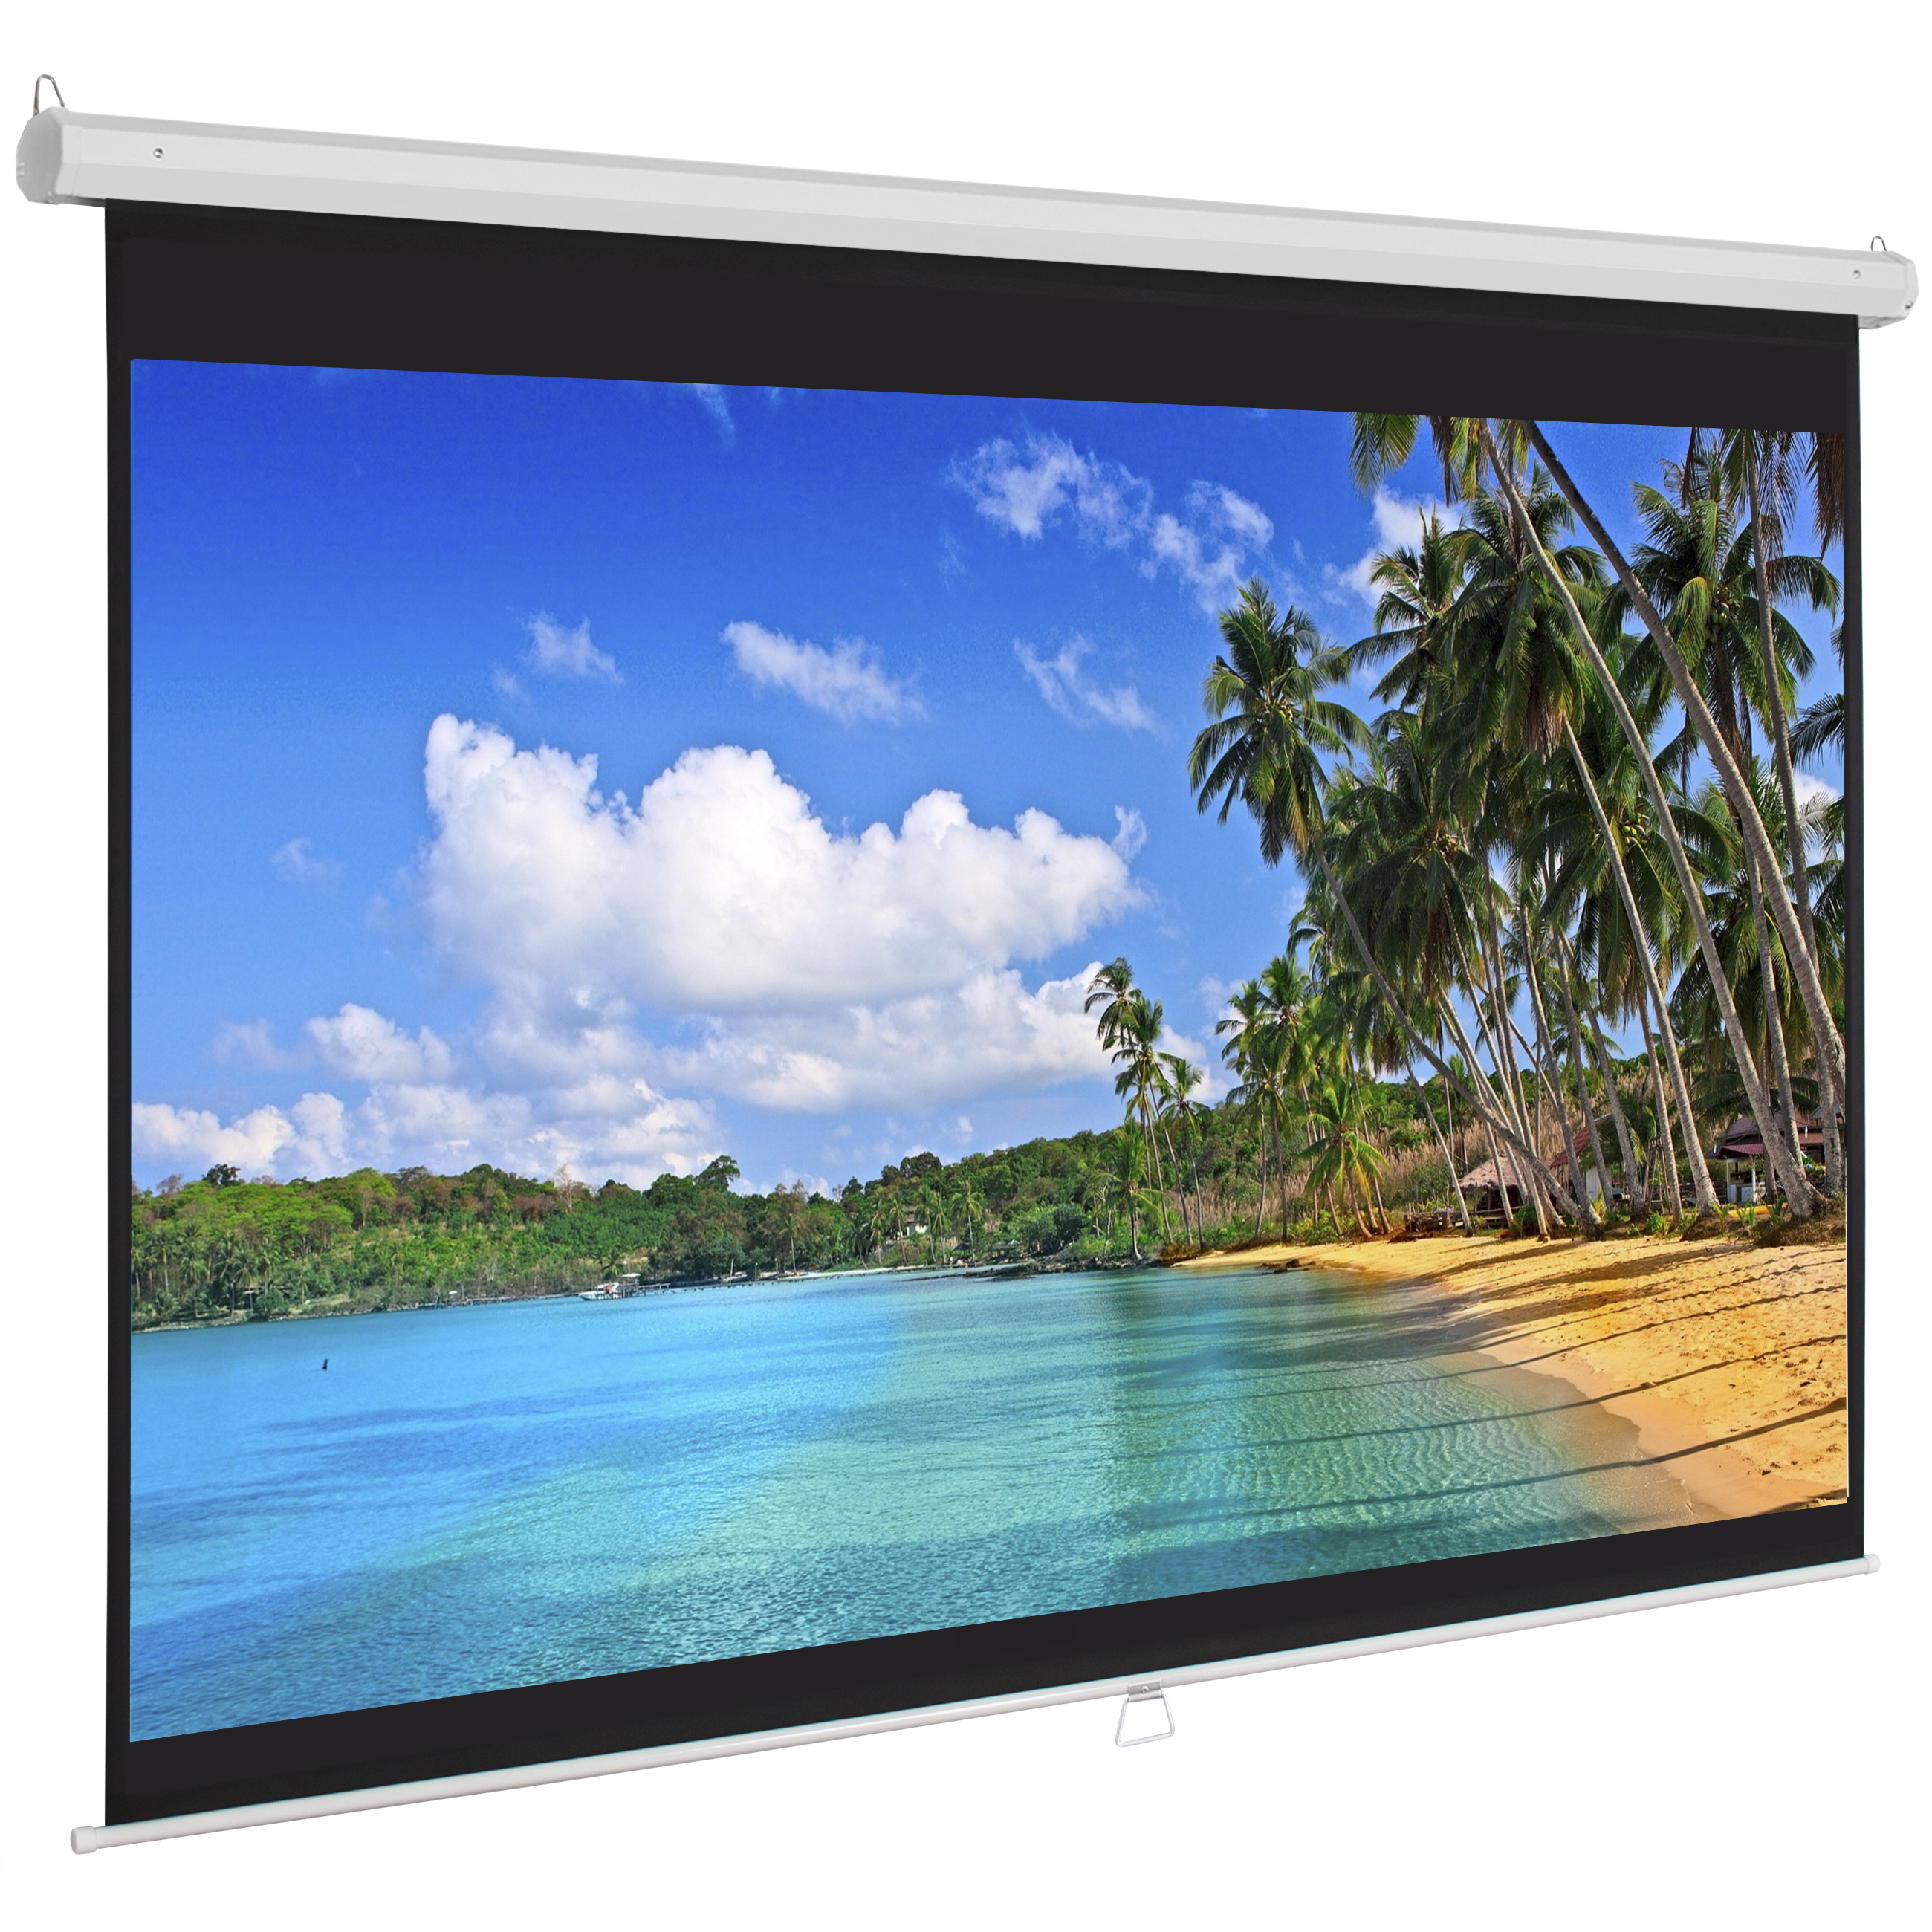 Best Choice Products 119in Ultra HD 1:1 Gain Indoor Pull Down Manual Widescreen Wall Mounted Projector Screen for Home, Cinema, TV, Theater, Office - White